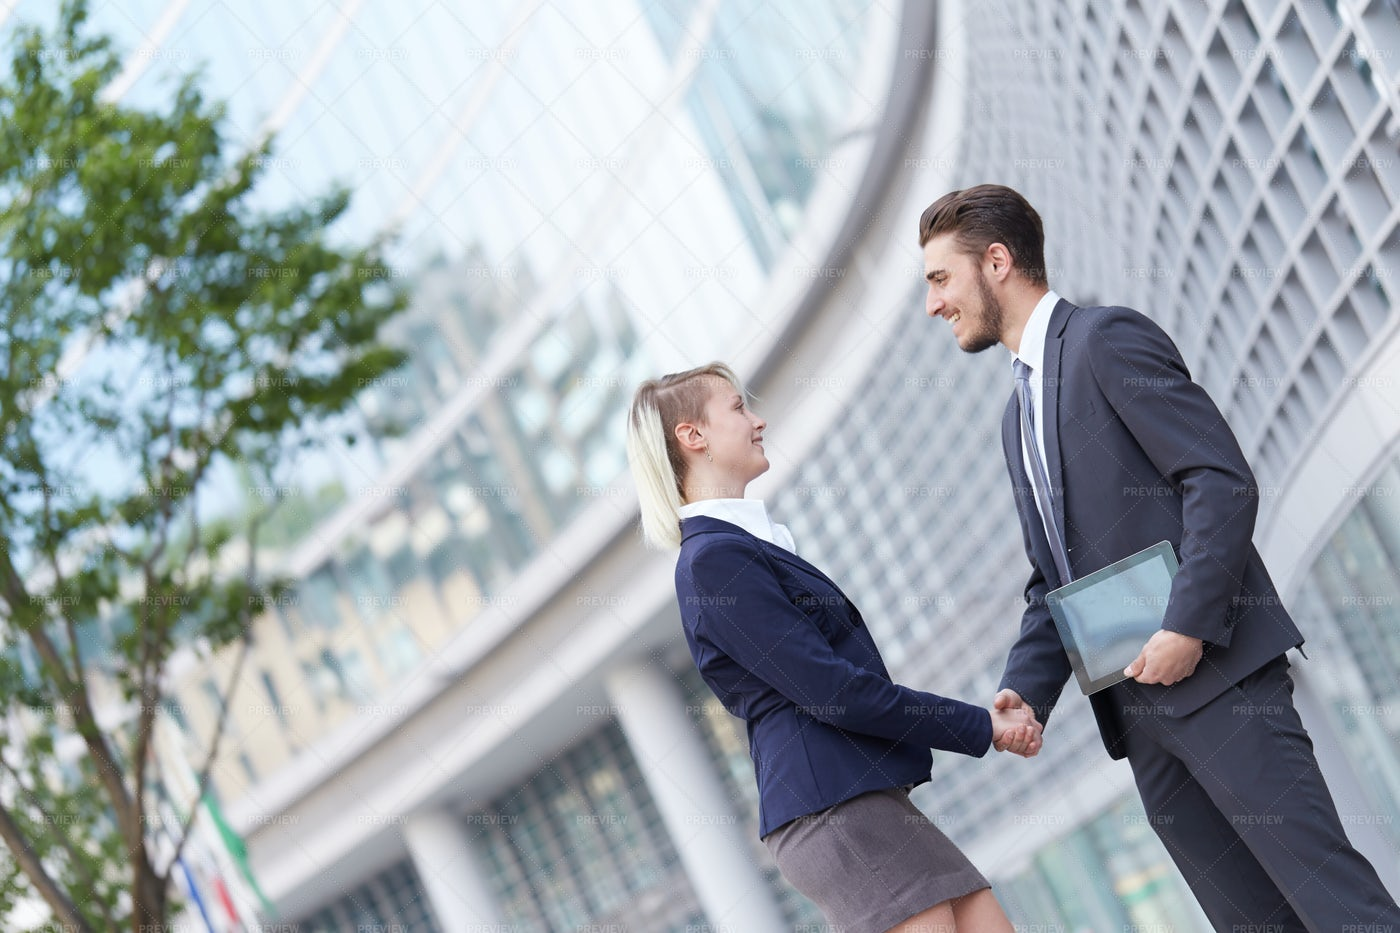 Deal With A Handshake: Stock Photos